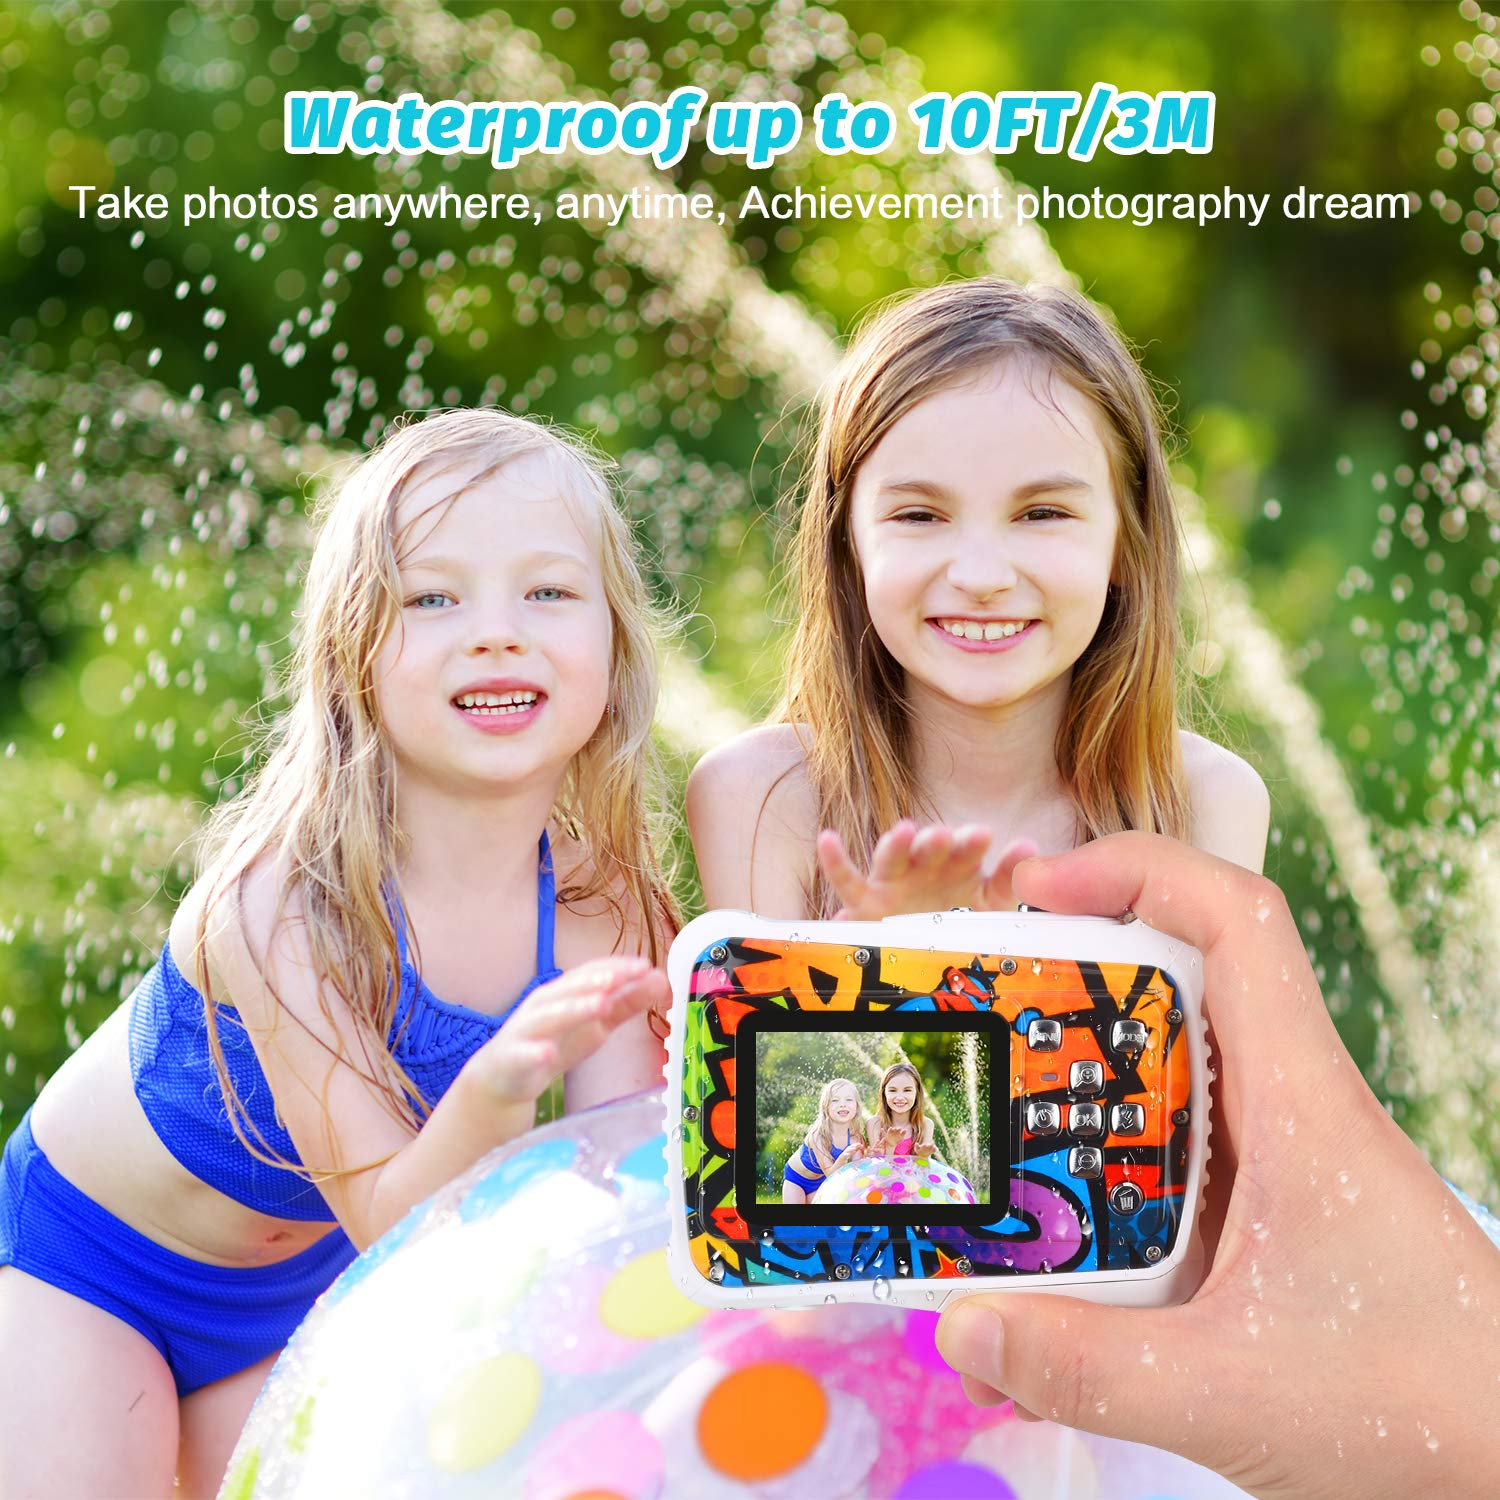 BOMEON Waterproof Camera for Kids 12MP HD Underwater Action Camera Camcorder with 8X Digital Zoom Flash Mic 2.0 Inch LCD Display with 8G SD Card 3 Non-Rechargeable Batteries Included by BOMEON (Image #5)